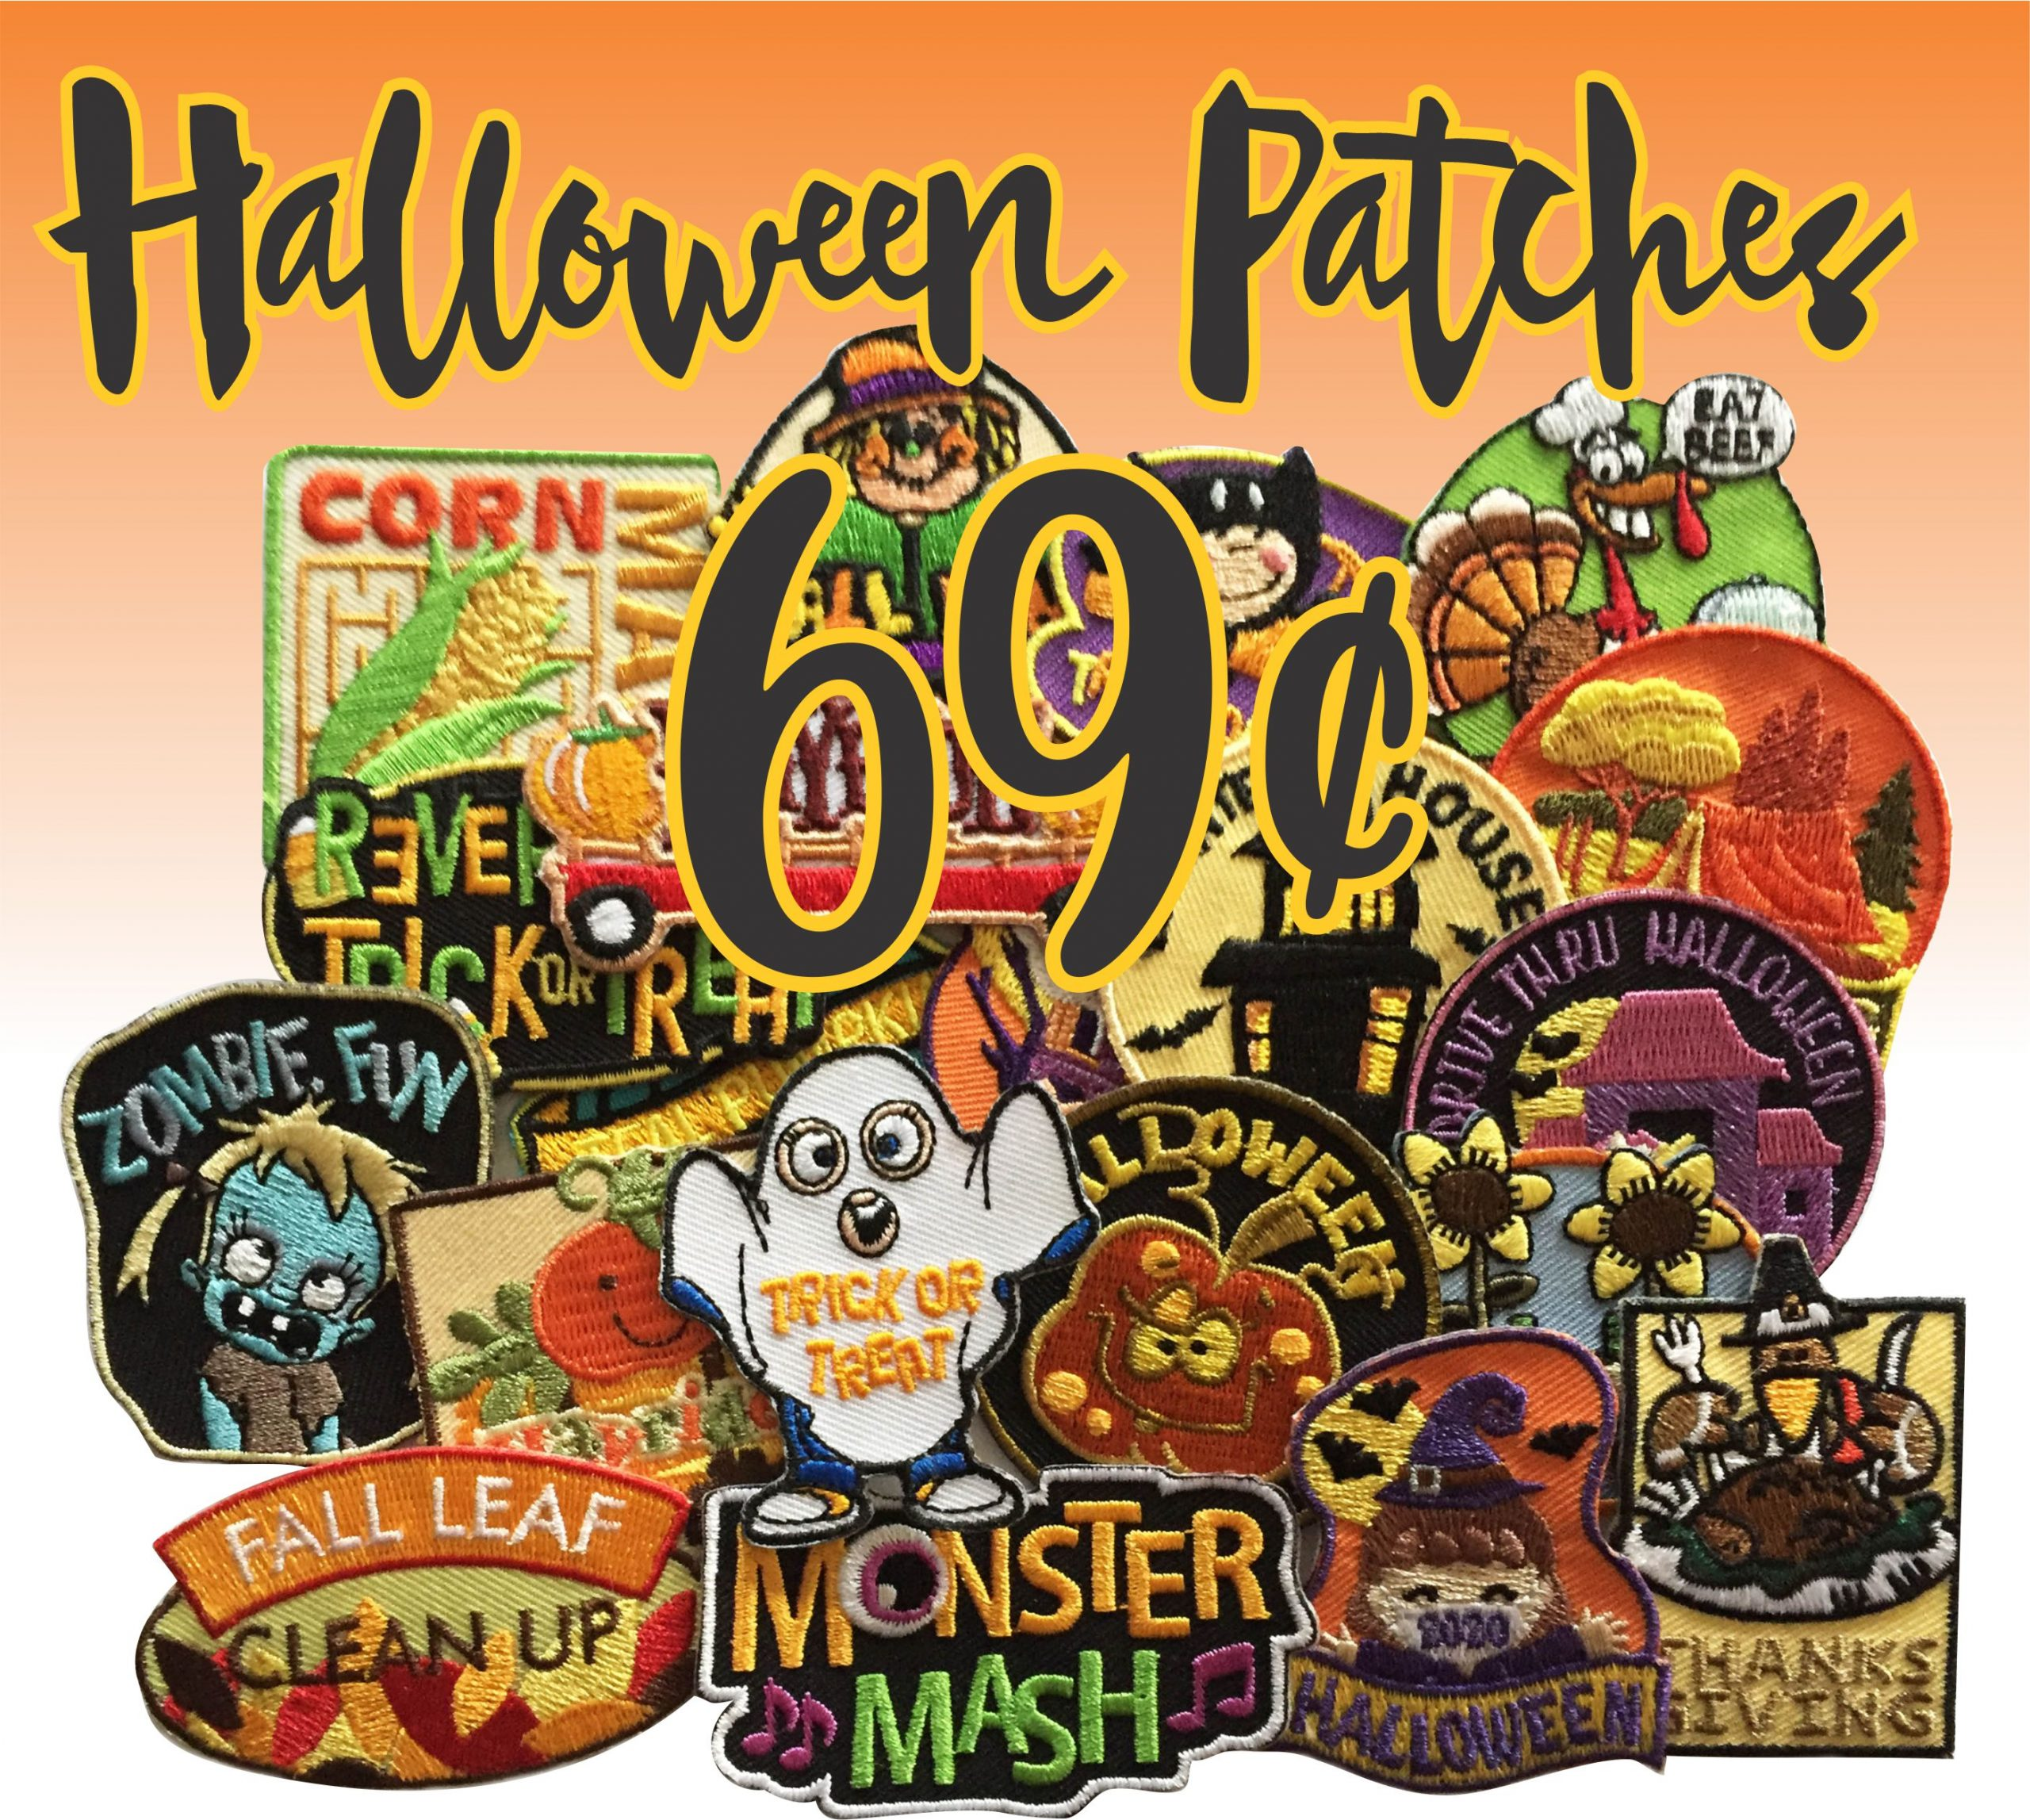 69 cent Girl Scout Halloween Patches